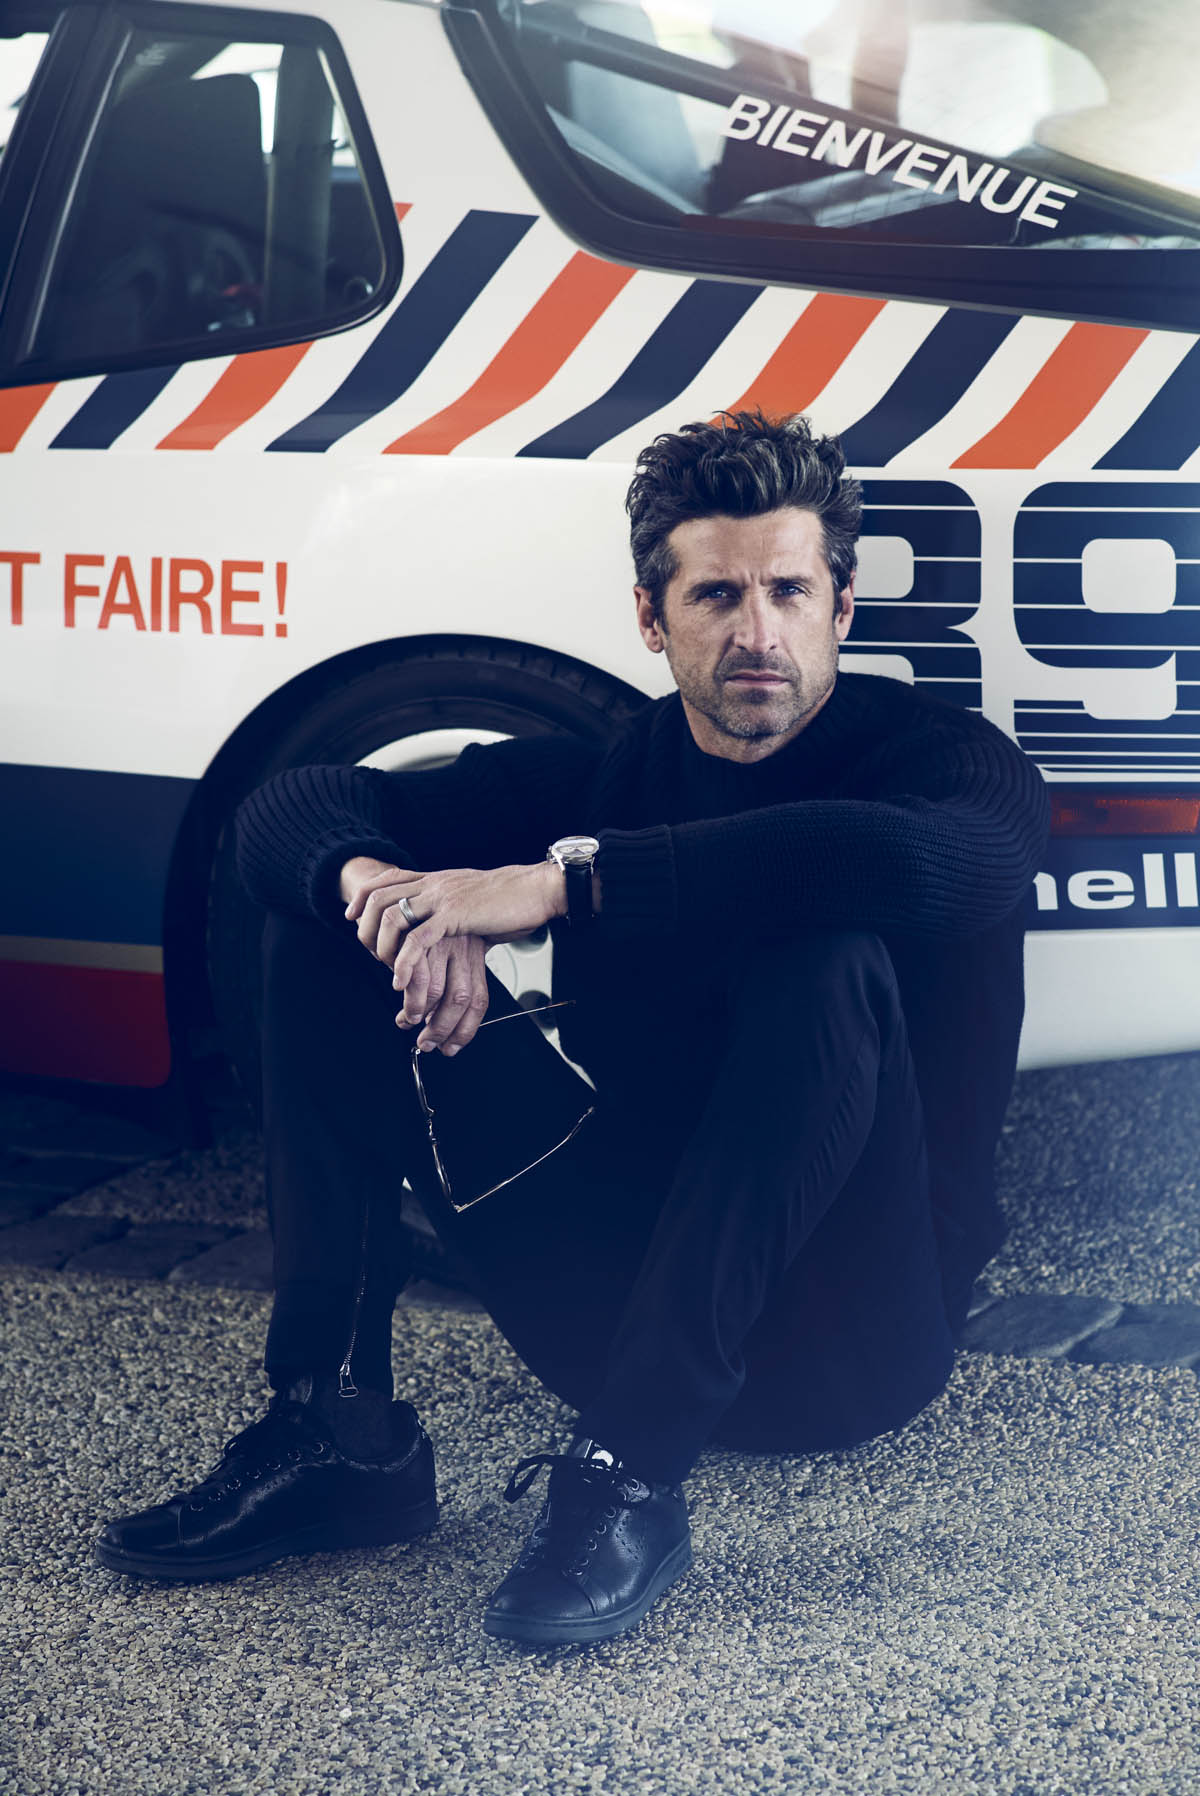 Patrick Dempsey for Intersection FR © Robert Wunsch 2016